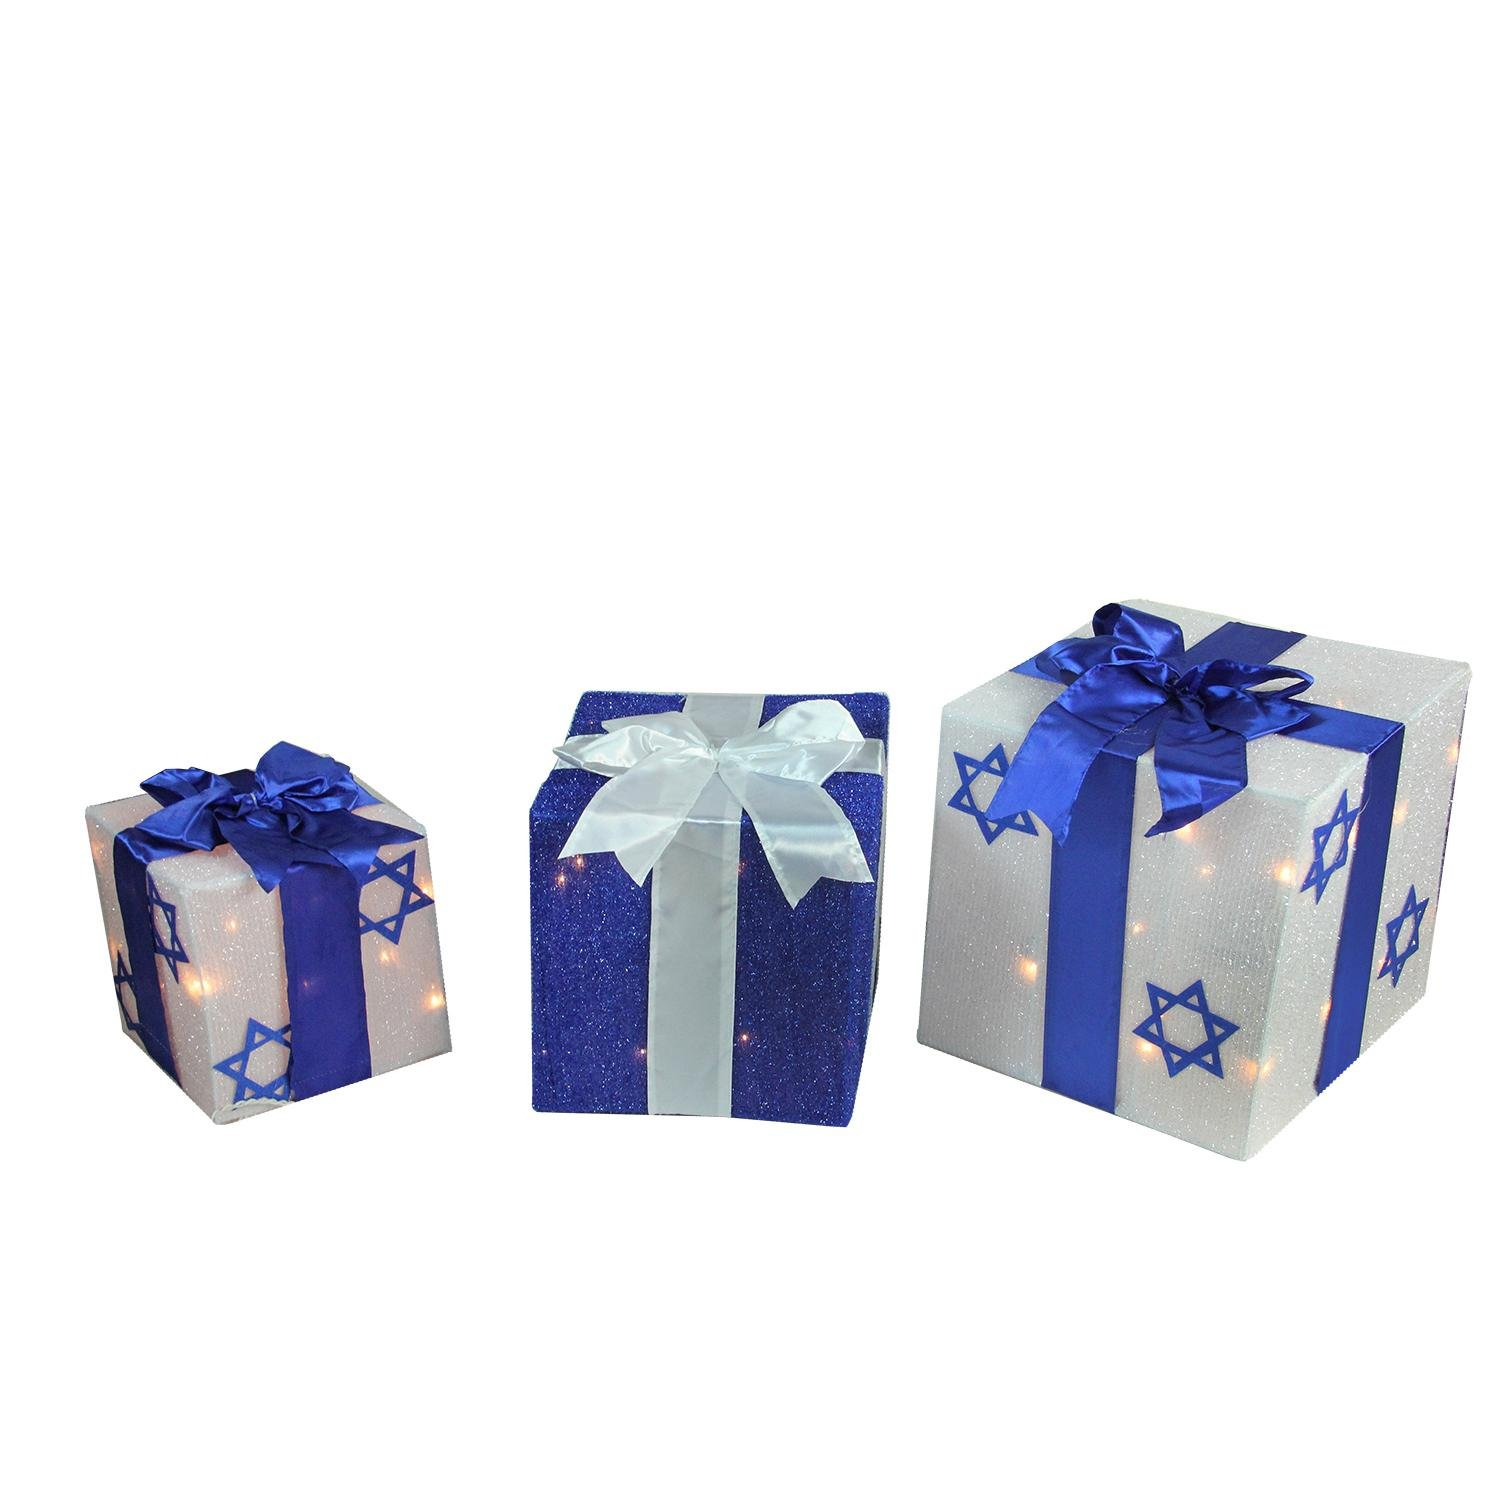 Amazon.com: Northlight ZG15678 3-Piece Lighted White and Blue Gift Box Hanukkah Outdoor Decoration: Garden & Outdoor